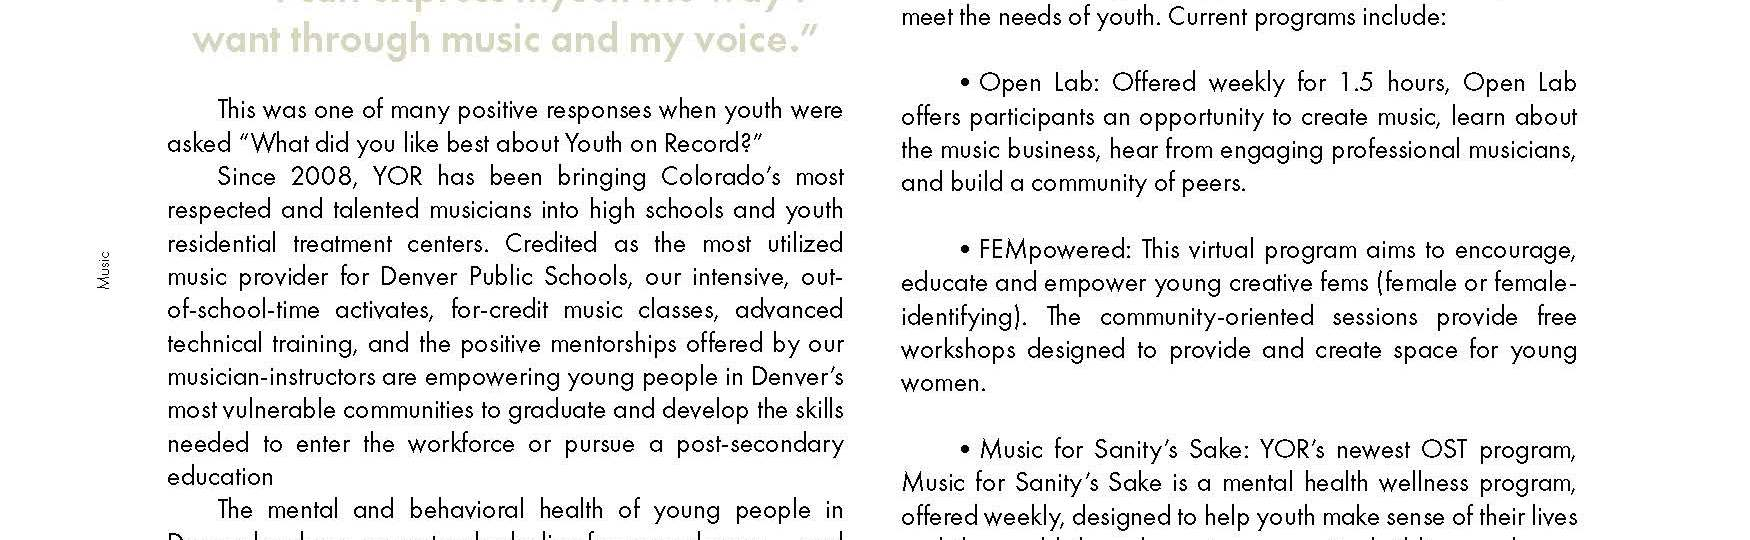 Programs for youth..everywhere